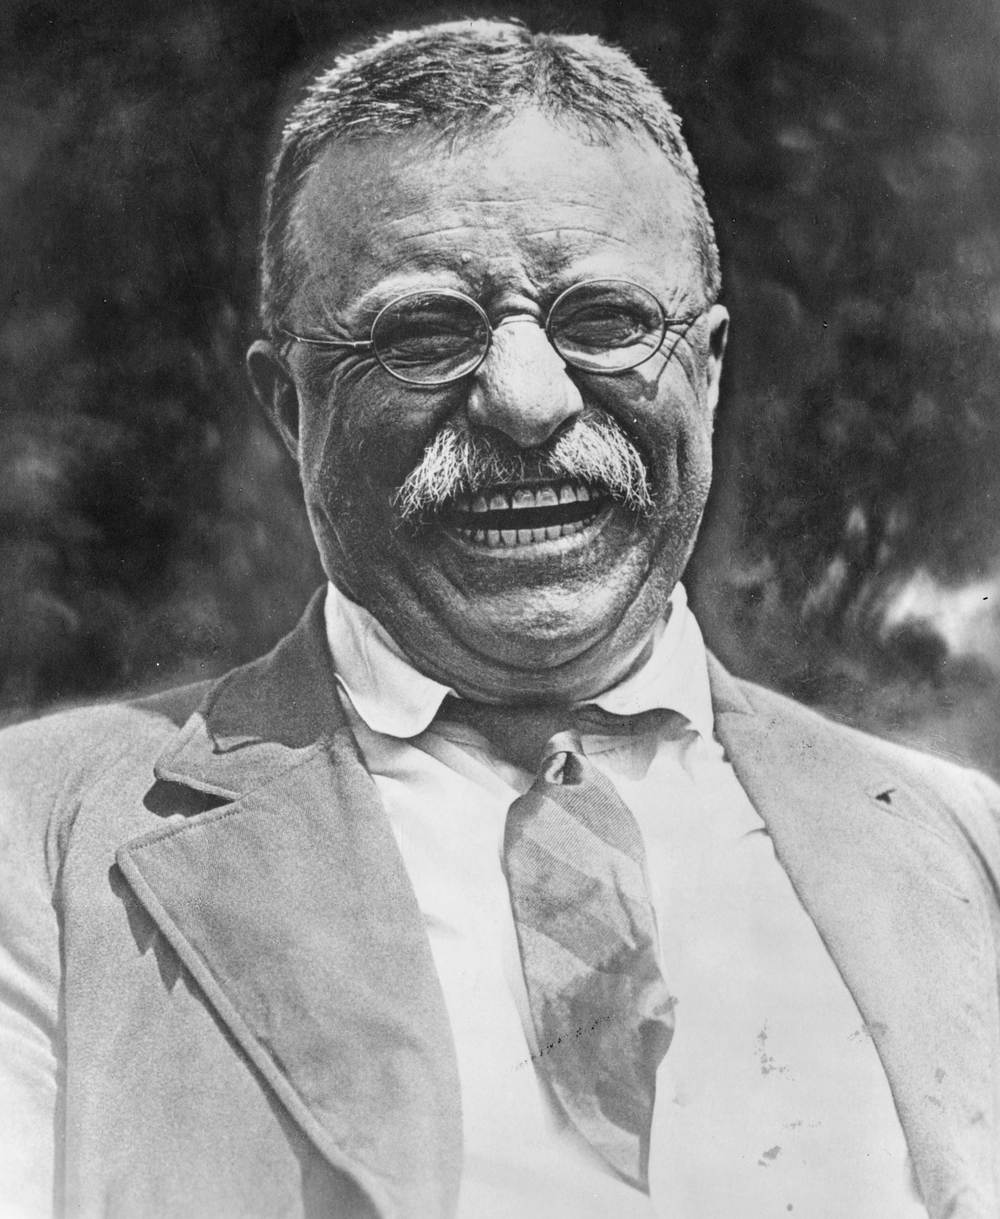 Theodore Roosevelt, laughing